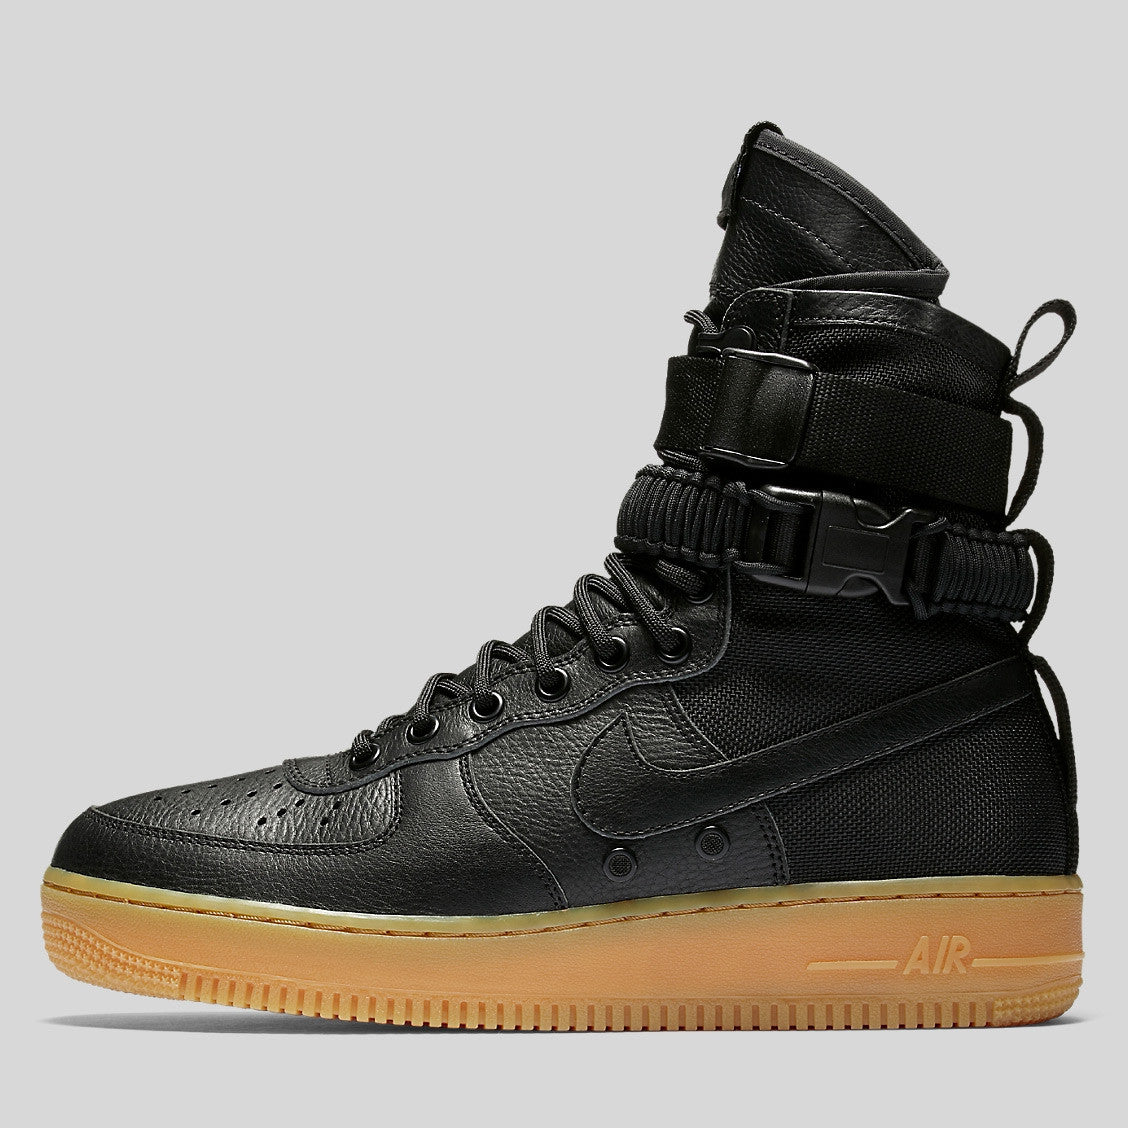 Nike SF AF1 Special Field Air Force 1 Black Gum Light Brown